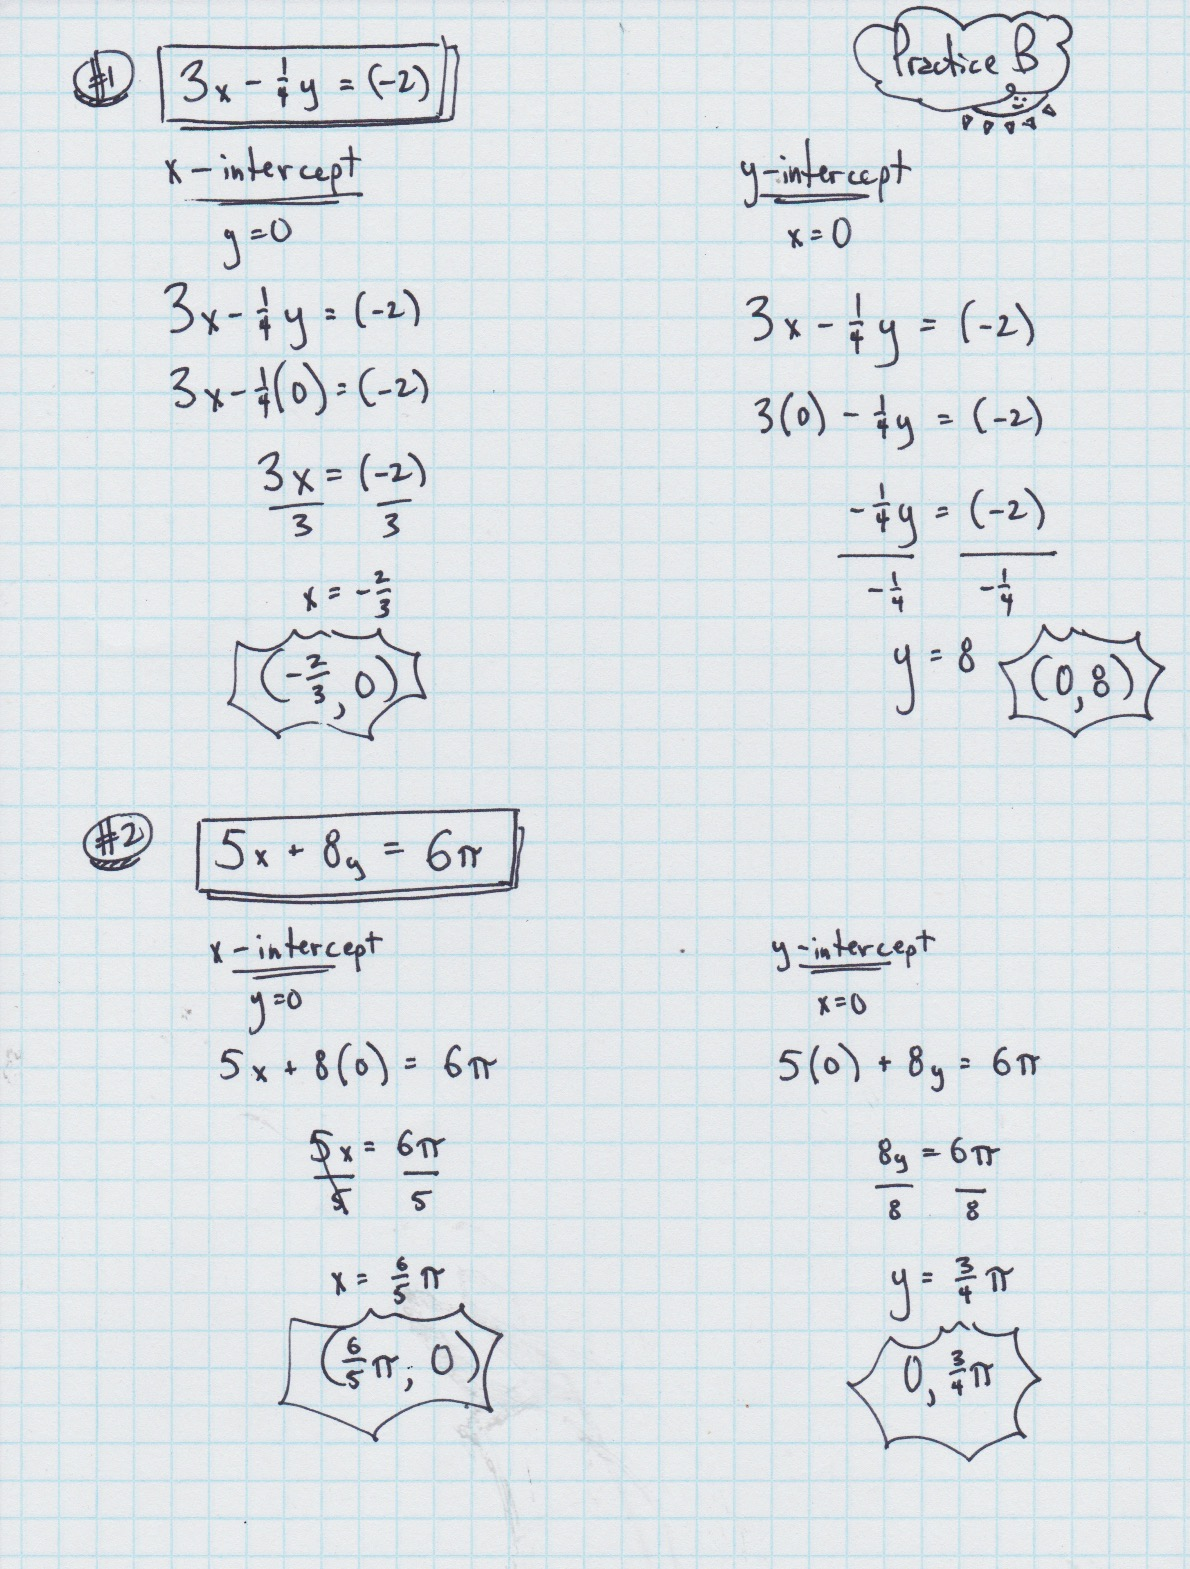 Yesterday S Work Unit 3 Linear Functions